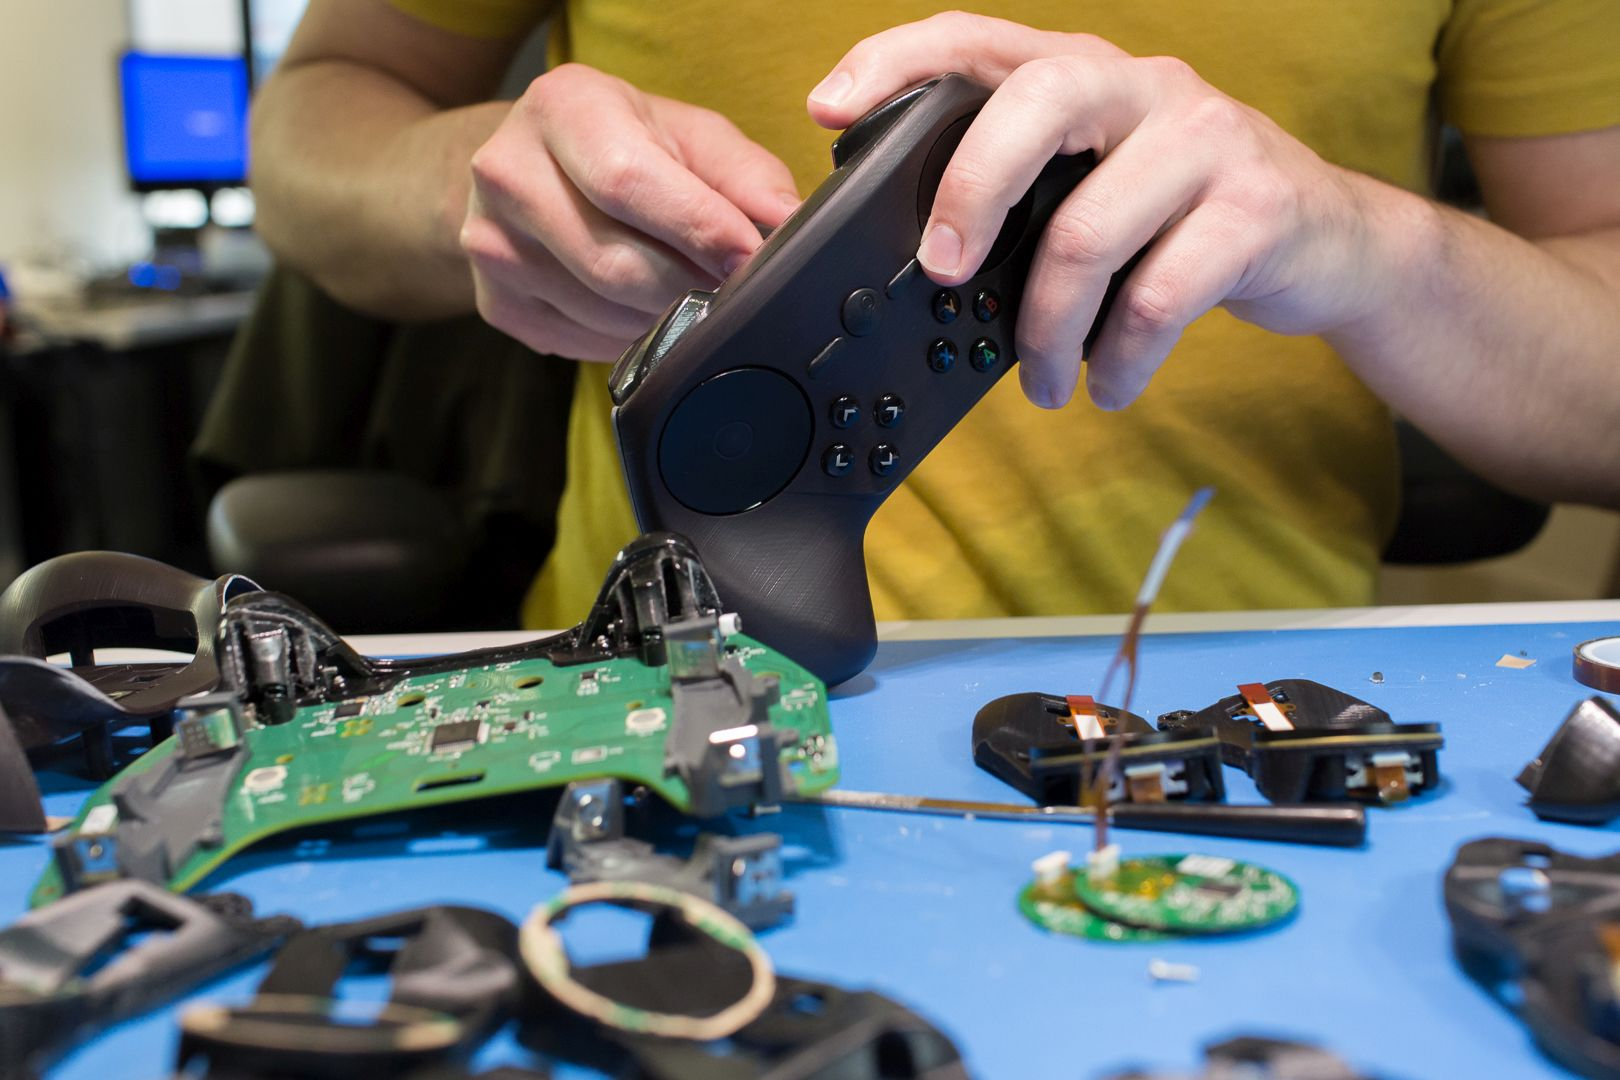 Good technology can be messy when disassembled